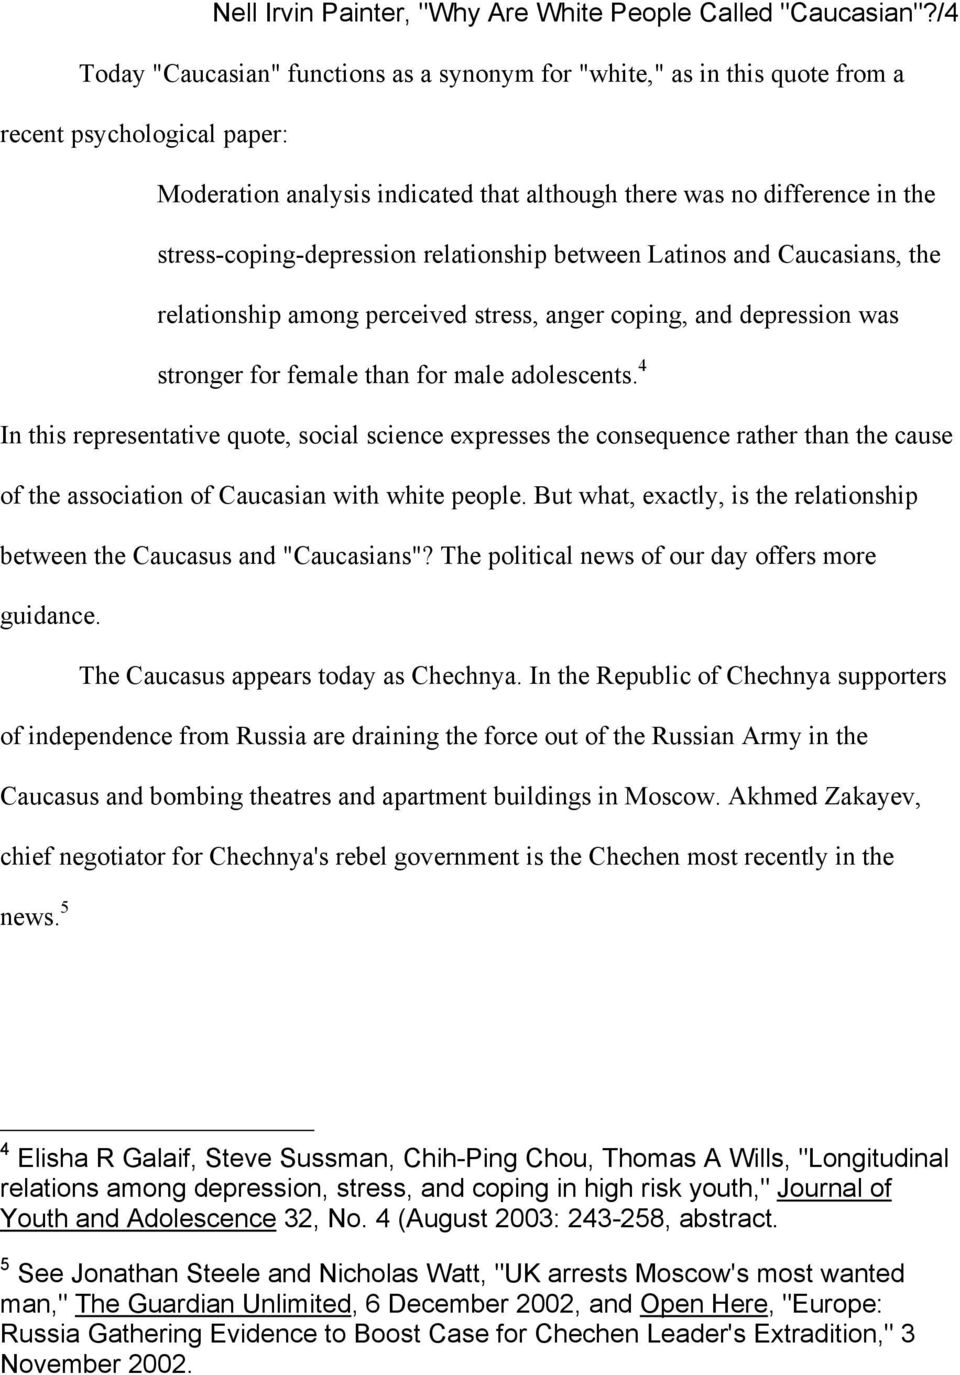 stress-coping-depression relationship between Latinos and Caucasians, the relationship among perceived stress, anger coping, and depression was stronger for female than for male adolescents.